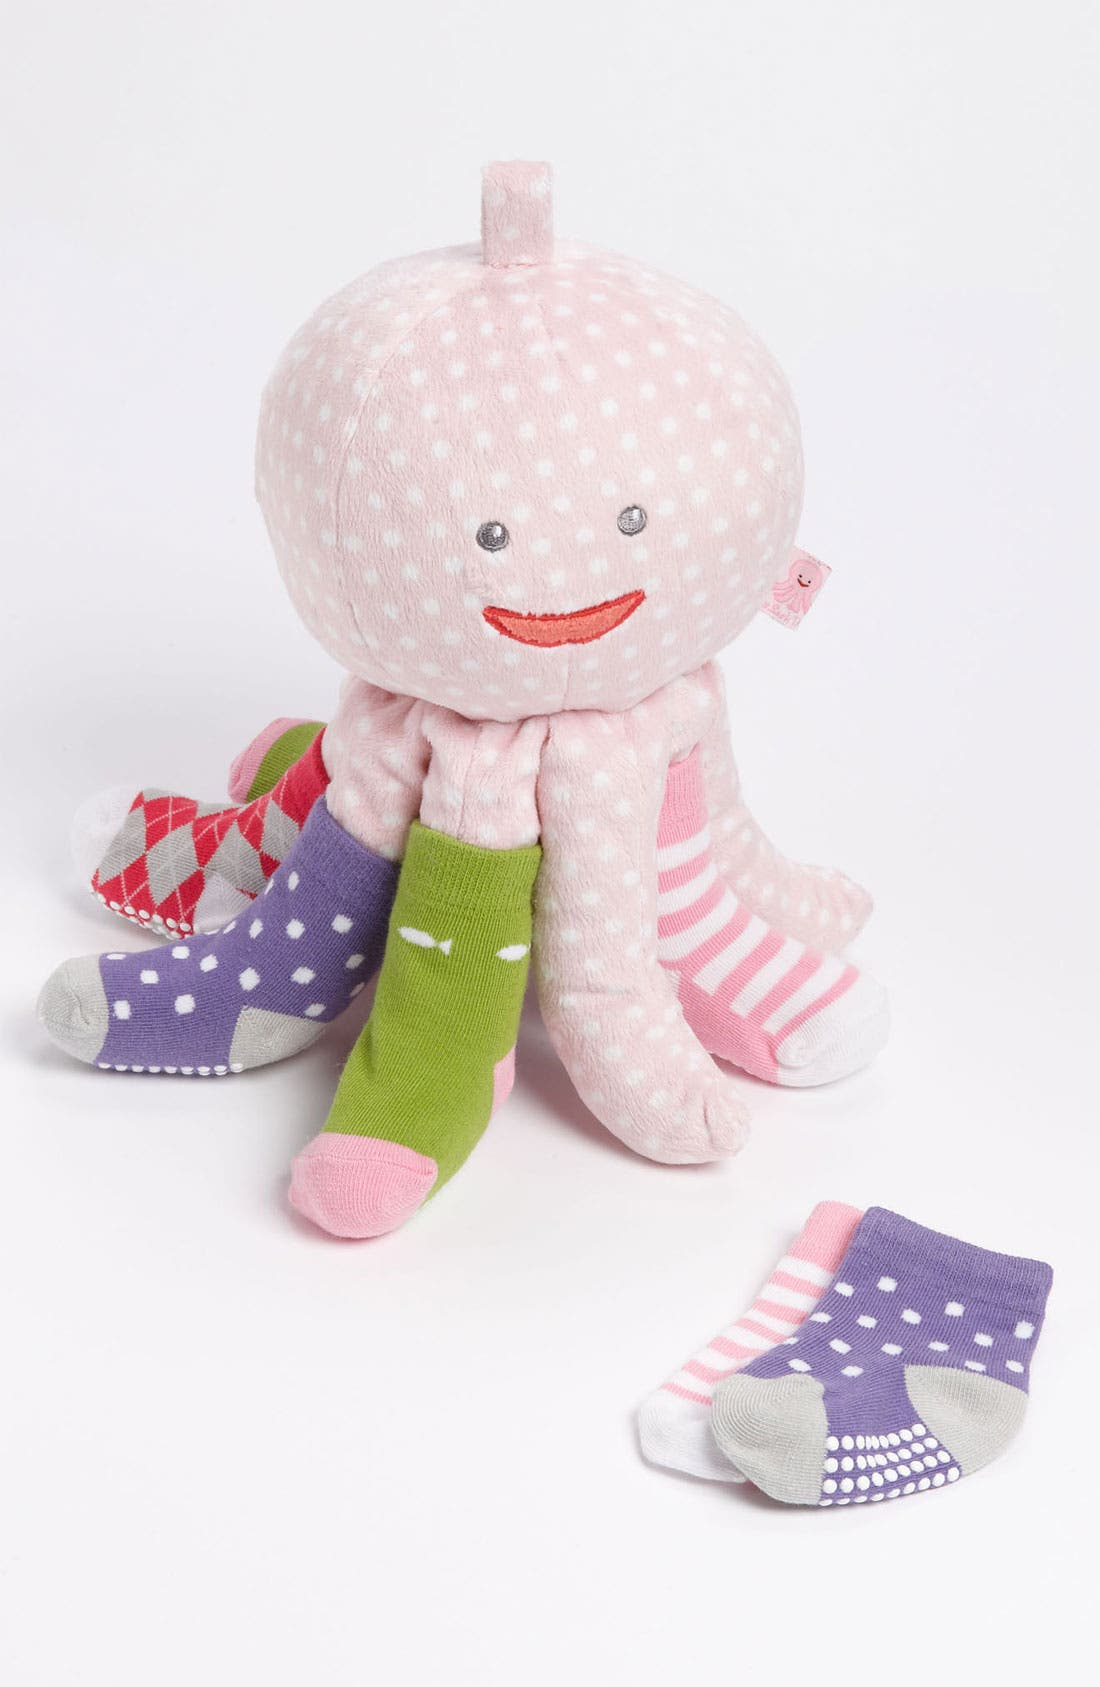 Alternate Image 1 Selected - Baby Aspen 'Mrs. Sock T. Pus' Stuffed Animal & Socks (4-Pack) (Infant)